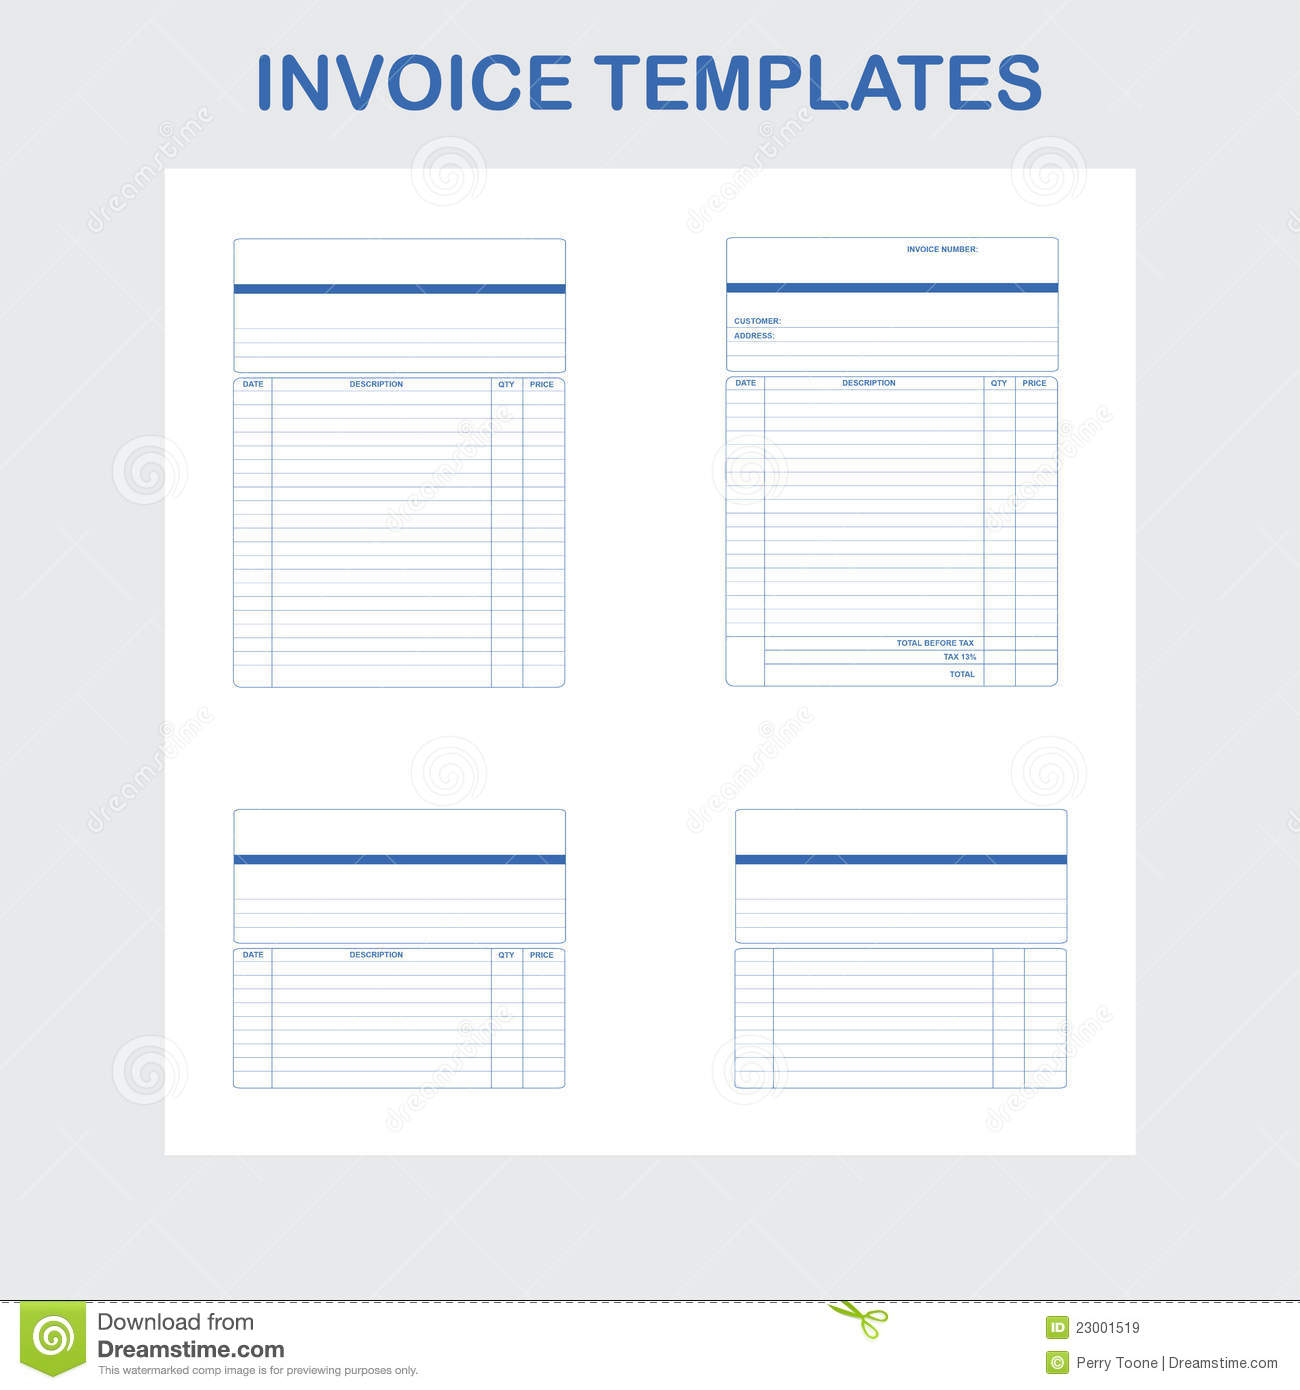 invoice templates stock vector  illustration of invoice